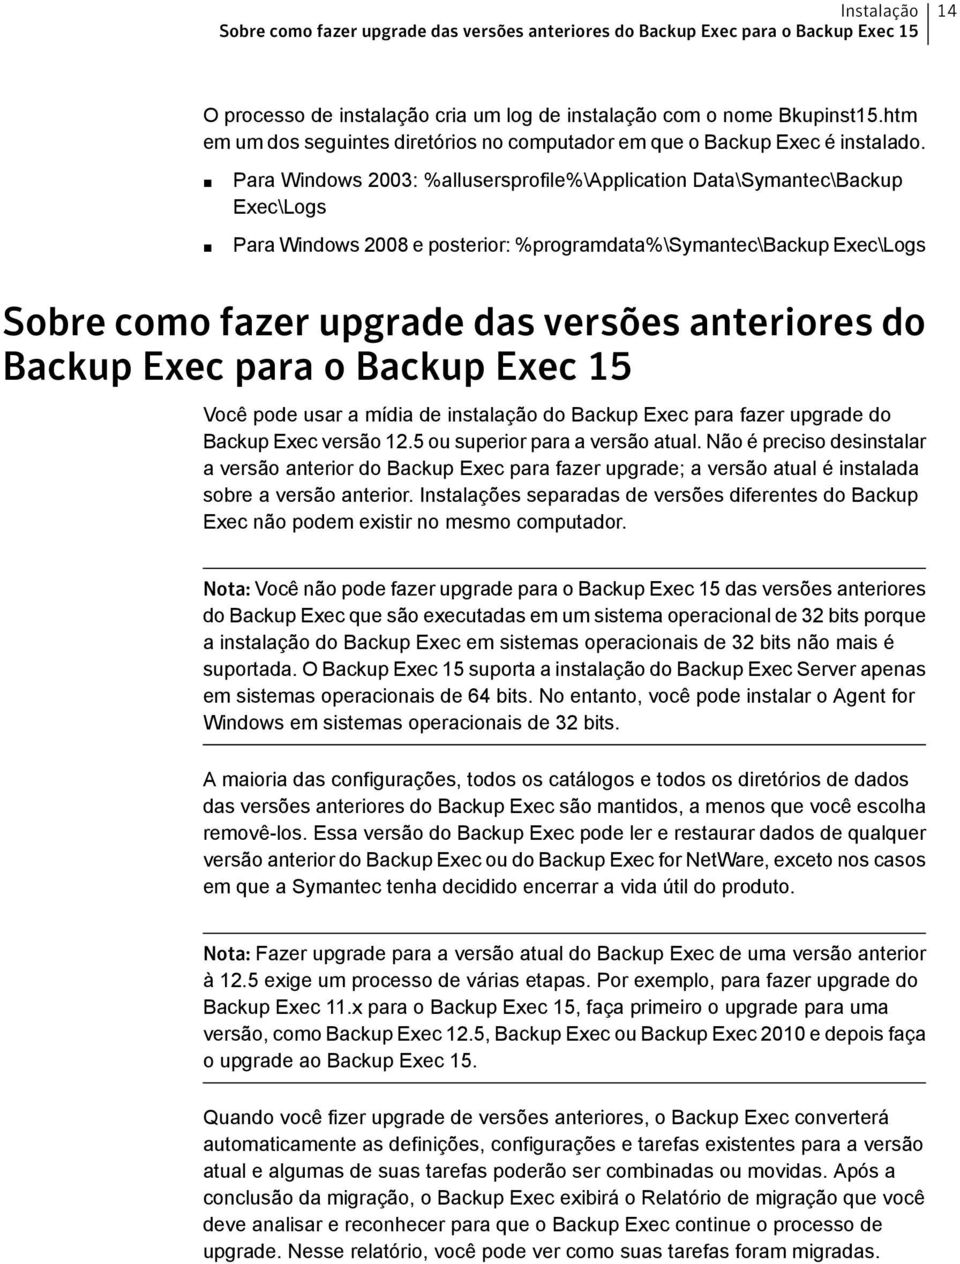 Para Windows 2003: %allusersprofile%\application Data\Symantec\Backup Exec\Logs Para Windows 2008 e posterior: %programdata%\symantec\backup Exec\Logs Sobre como fazer upgrade das versões anteriores